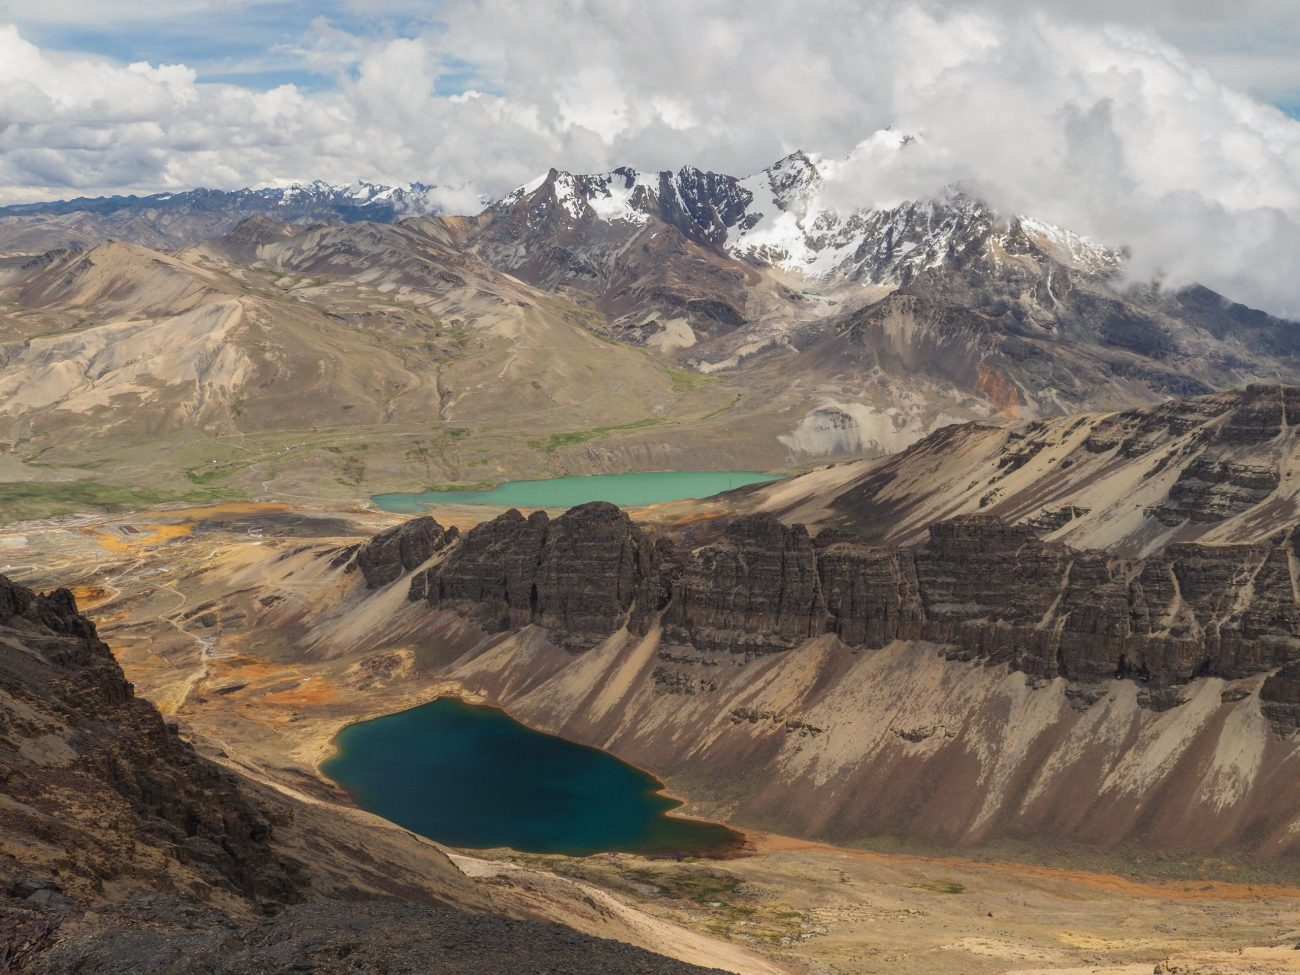 View from Chacaltaya at 4,300 meters, Near La Paz, Bolivia-unsplash